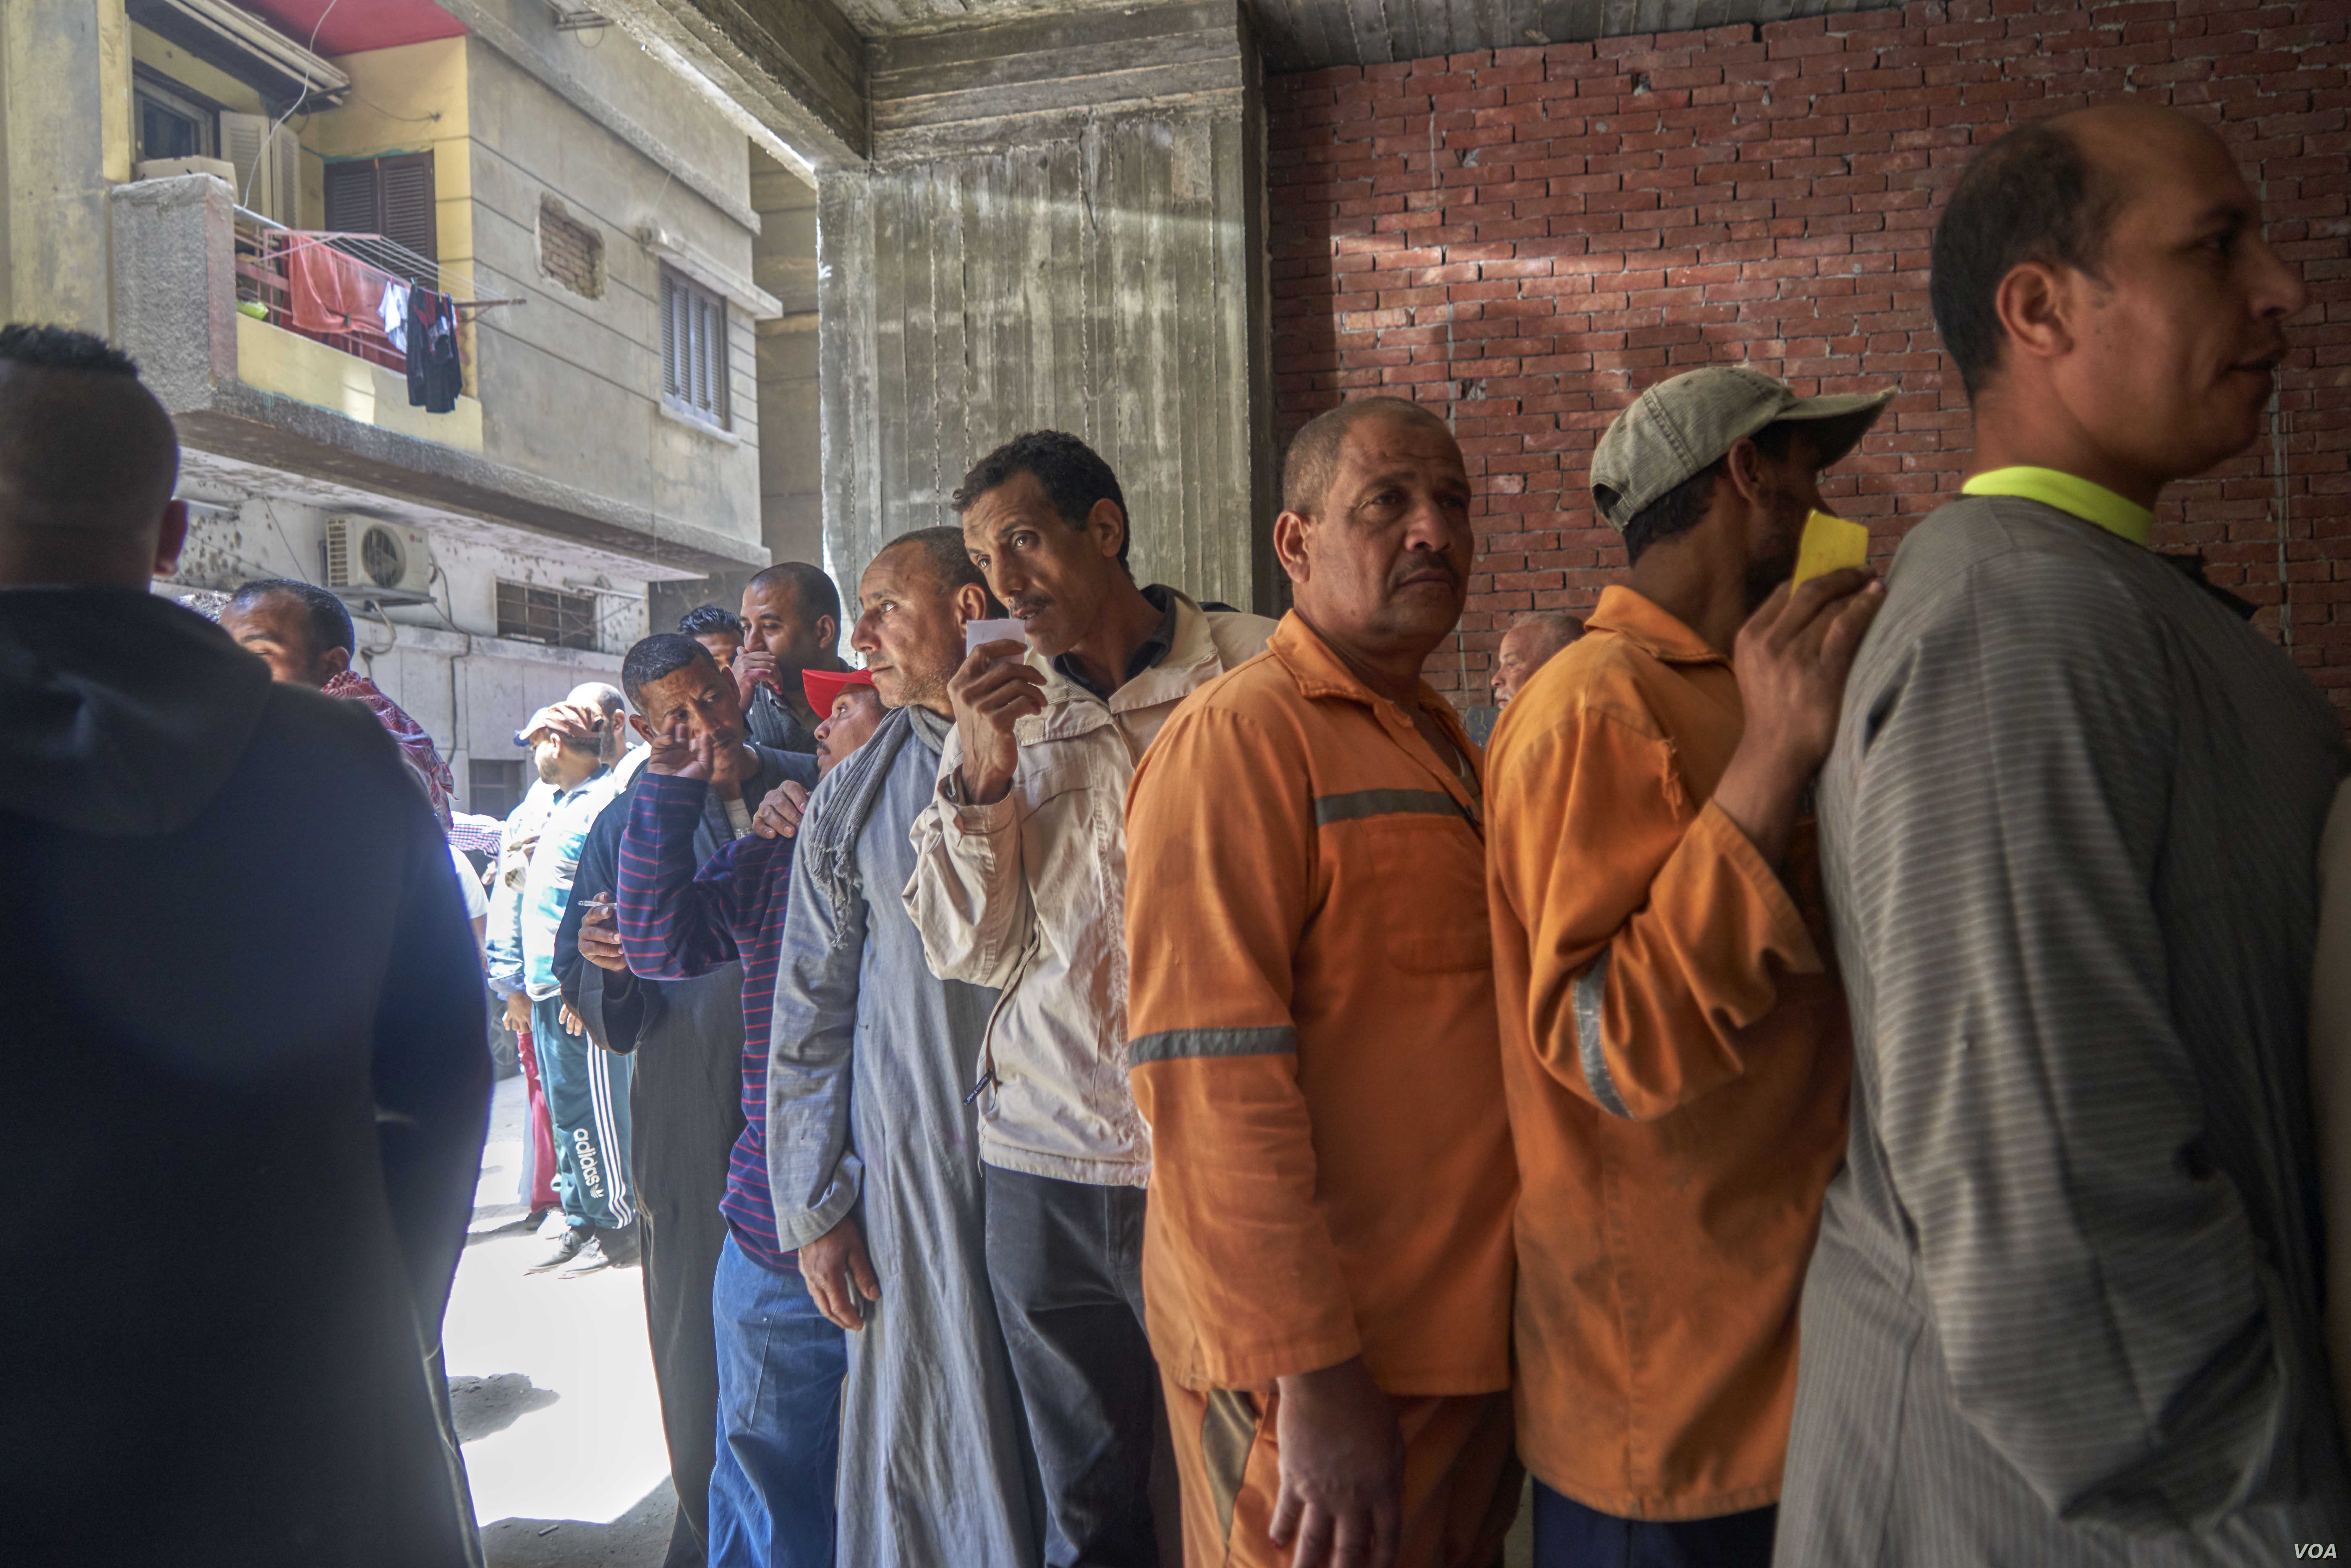 After voting, these men wait in line for bags of food or a small amount of money in Cairo on April 20, 2019.